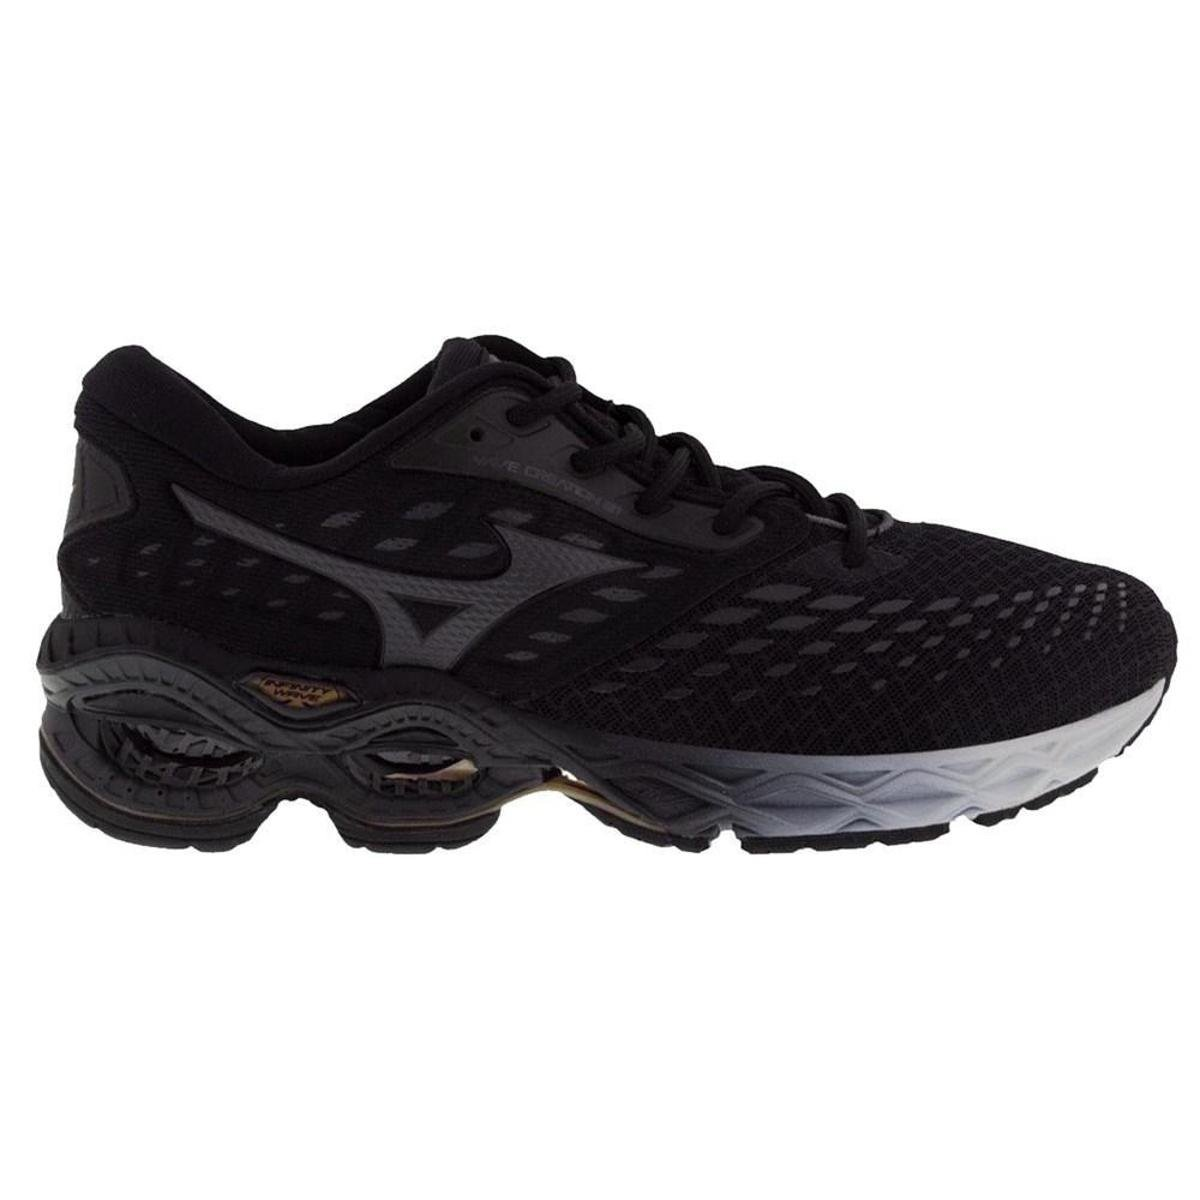 Tênis Mizuno Wave Creation 21 Feminino Preto